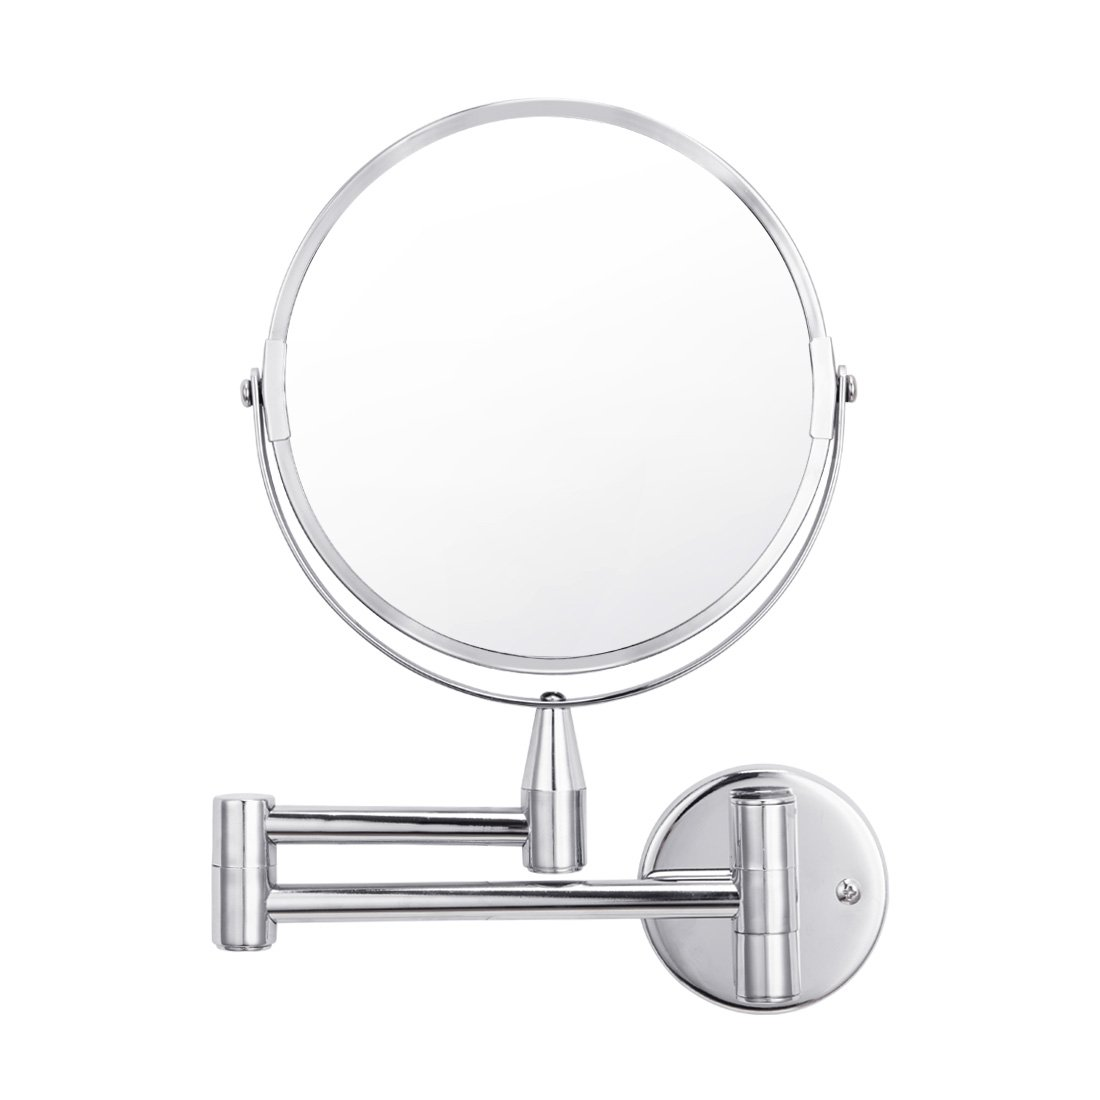 Vanity Magnifying Makeup Mirror Wall Mounted 1X/5X Magnification, Two-side, 360 Degrees Rotating Function, Chrome Finished for Bedroom Bathroom Hotel